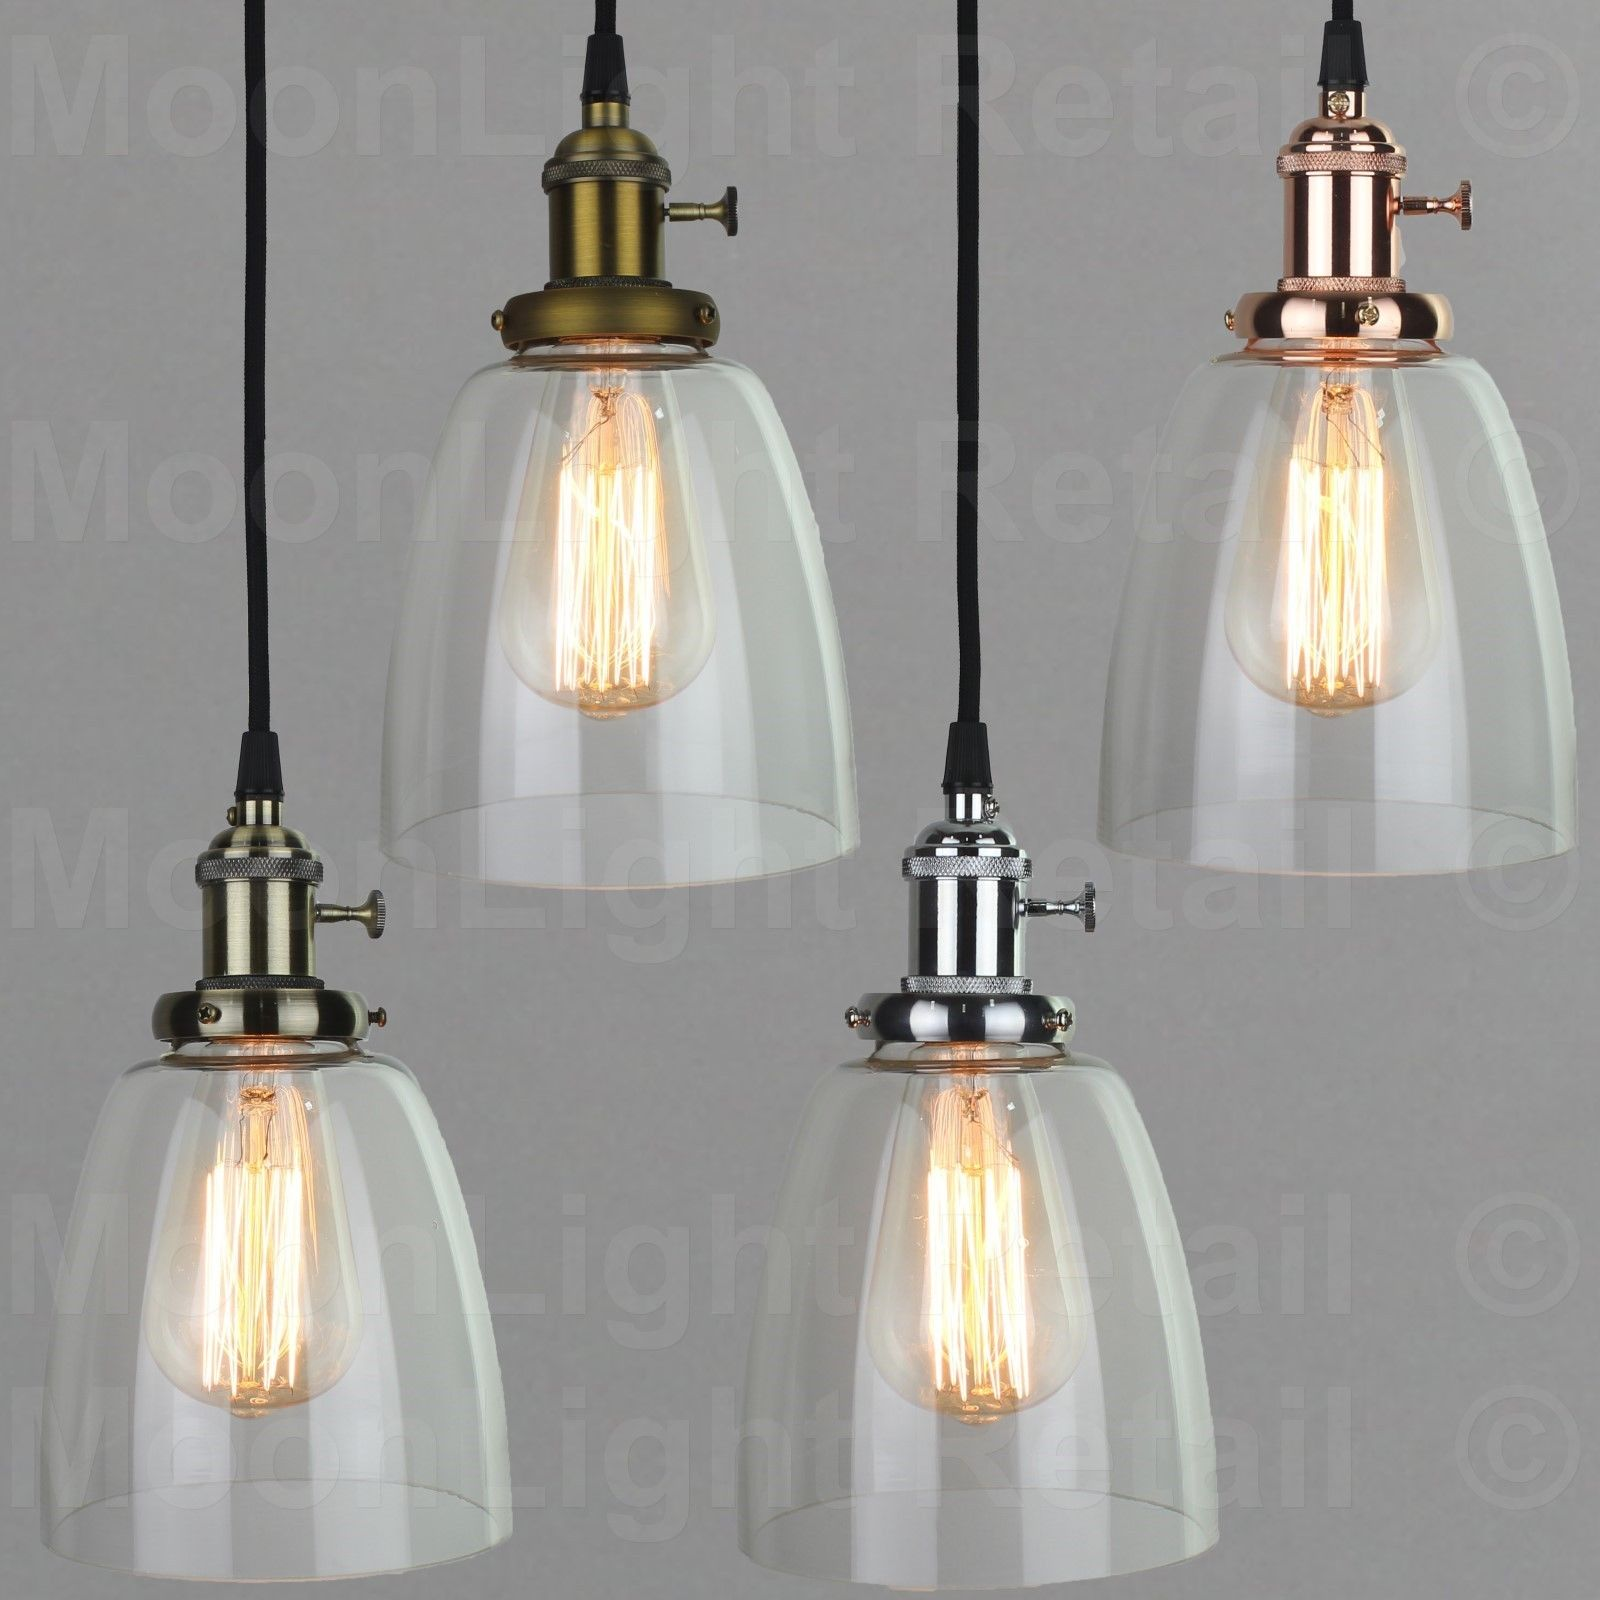 Pendant Lighting Shade. Vintage Industrial Ceiling Lamp Cafe Glass Pendant  Light Shade Lighting Fixture Pendant